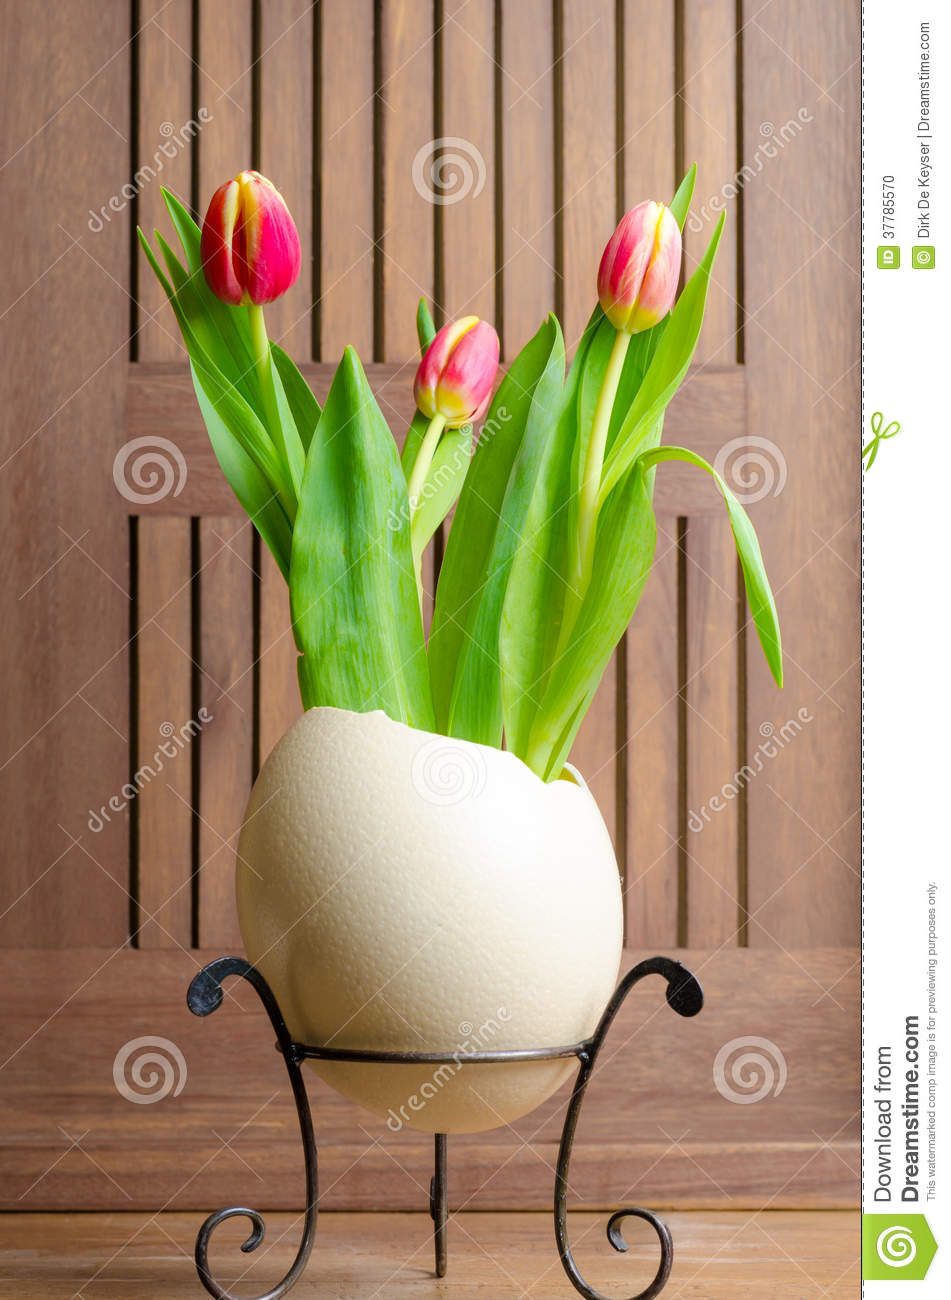 Tulips and easter egg